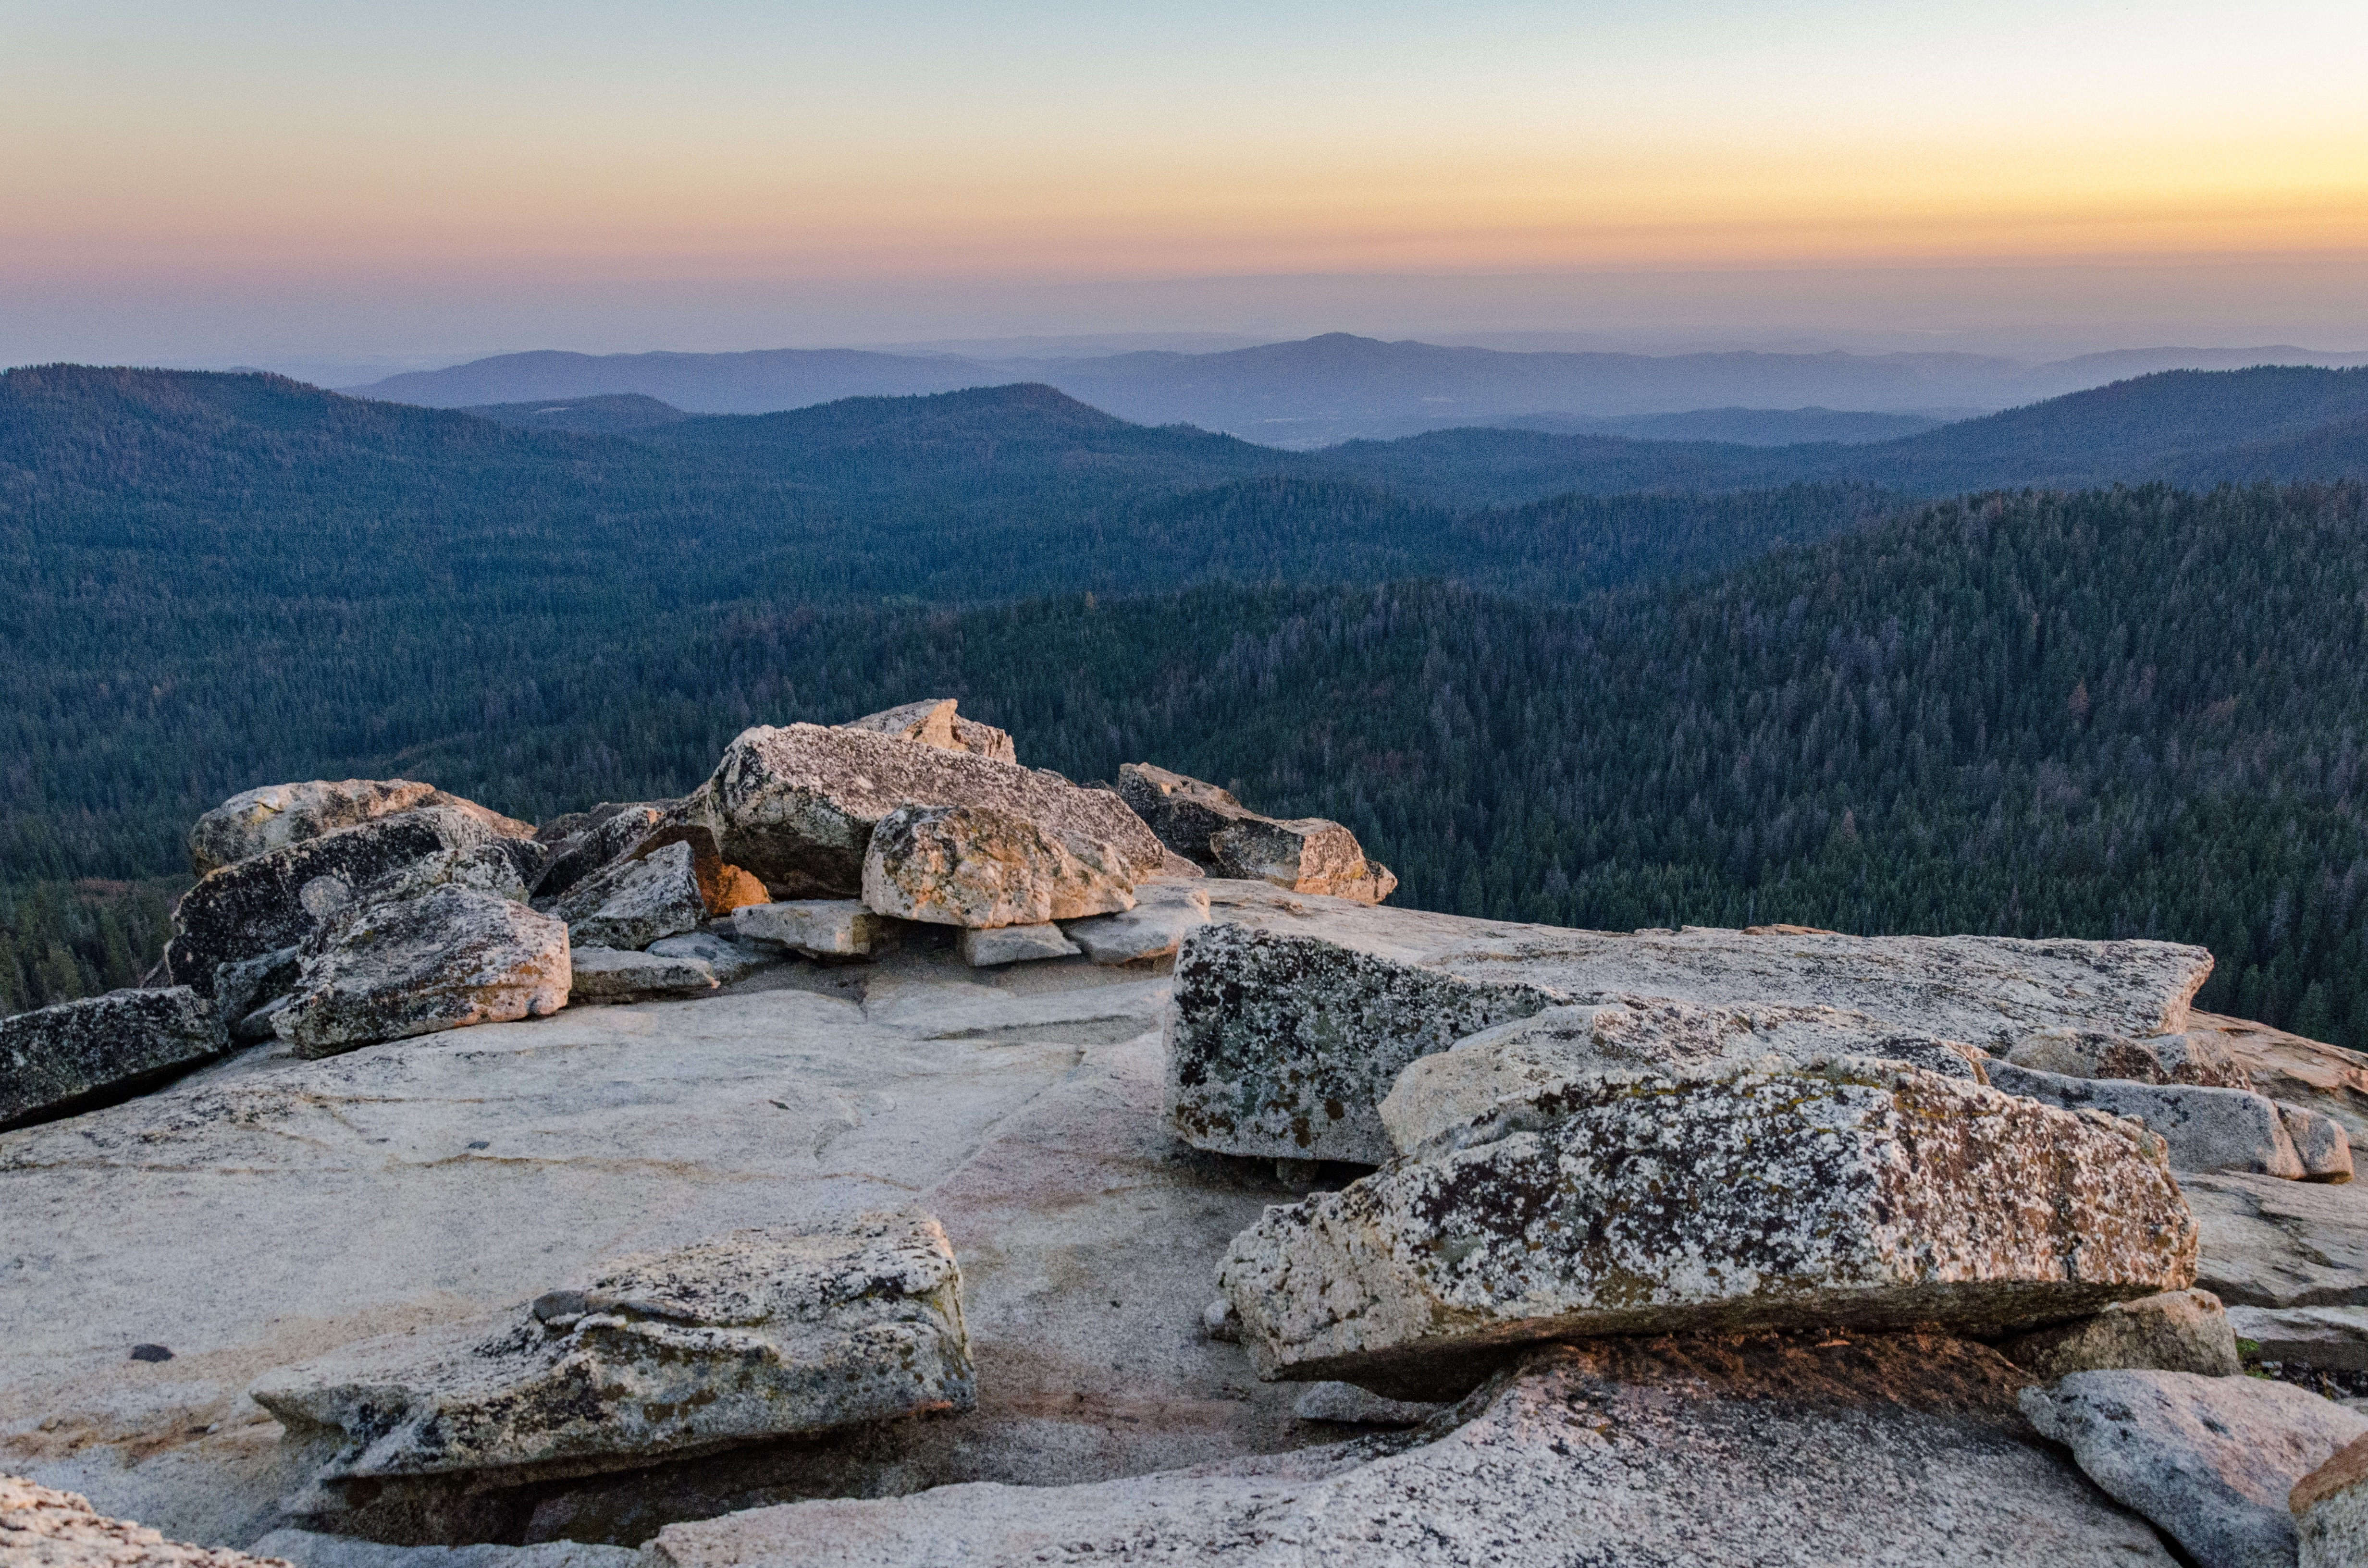 Another nearby highlight is a short, half-mile hike to the top of Fresno Dome.